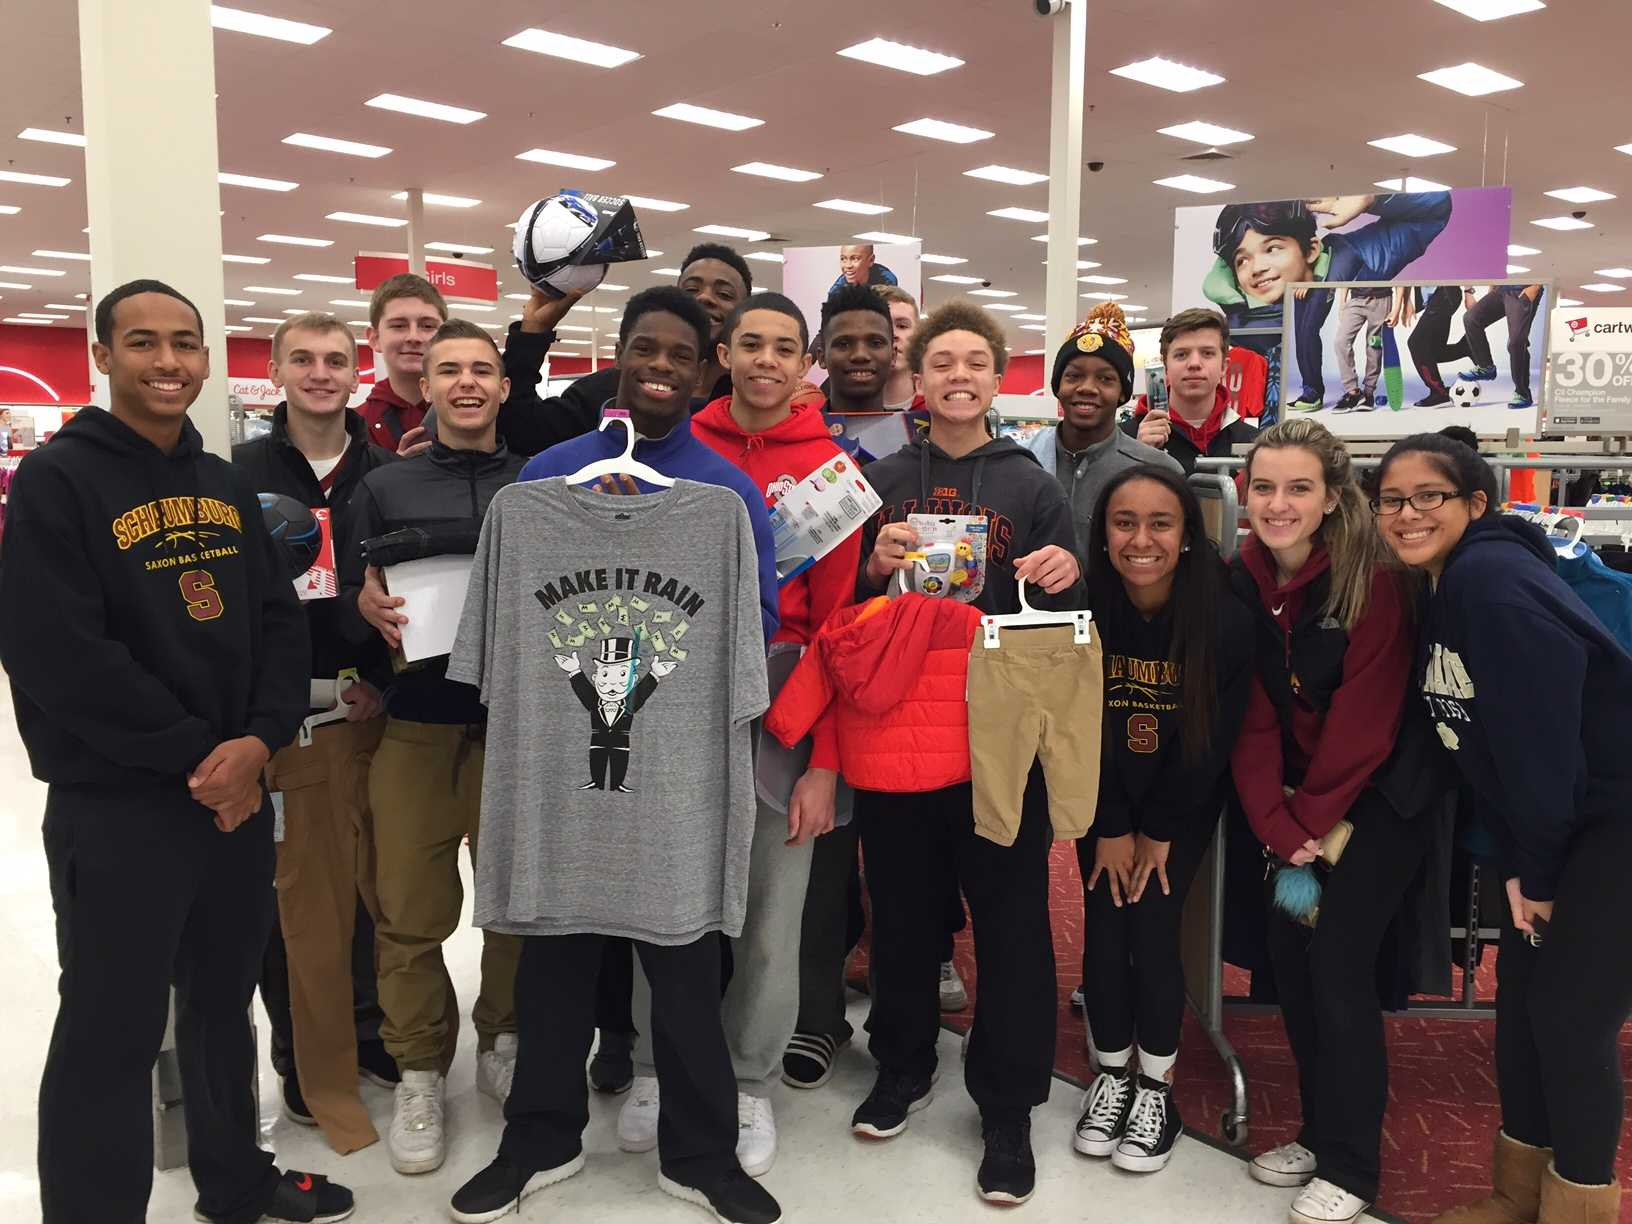 The boys' basketball team shops for their adopted family as part of the SHS Adopt-a-Family. Schaumburg High School students and staff provided gifts for members of 19 families and four senior citizens.